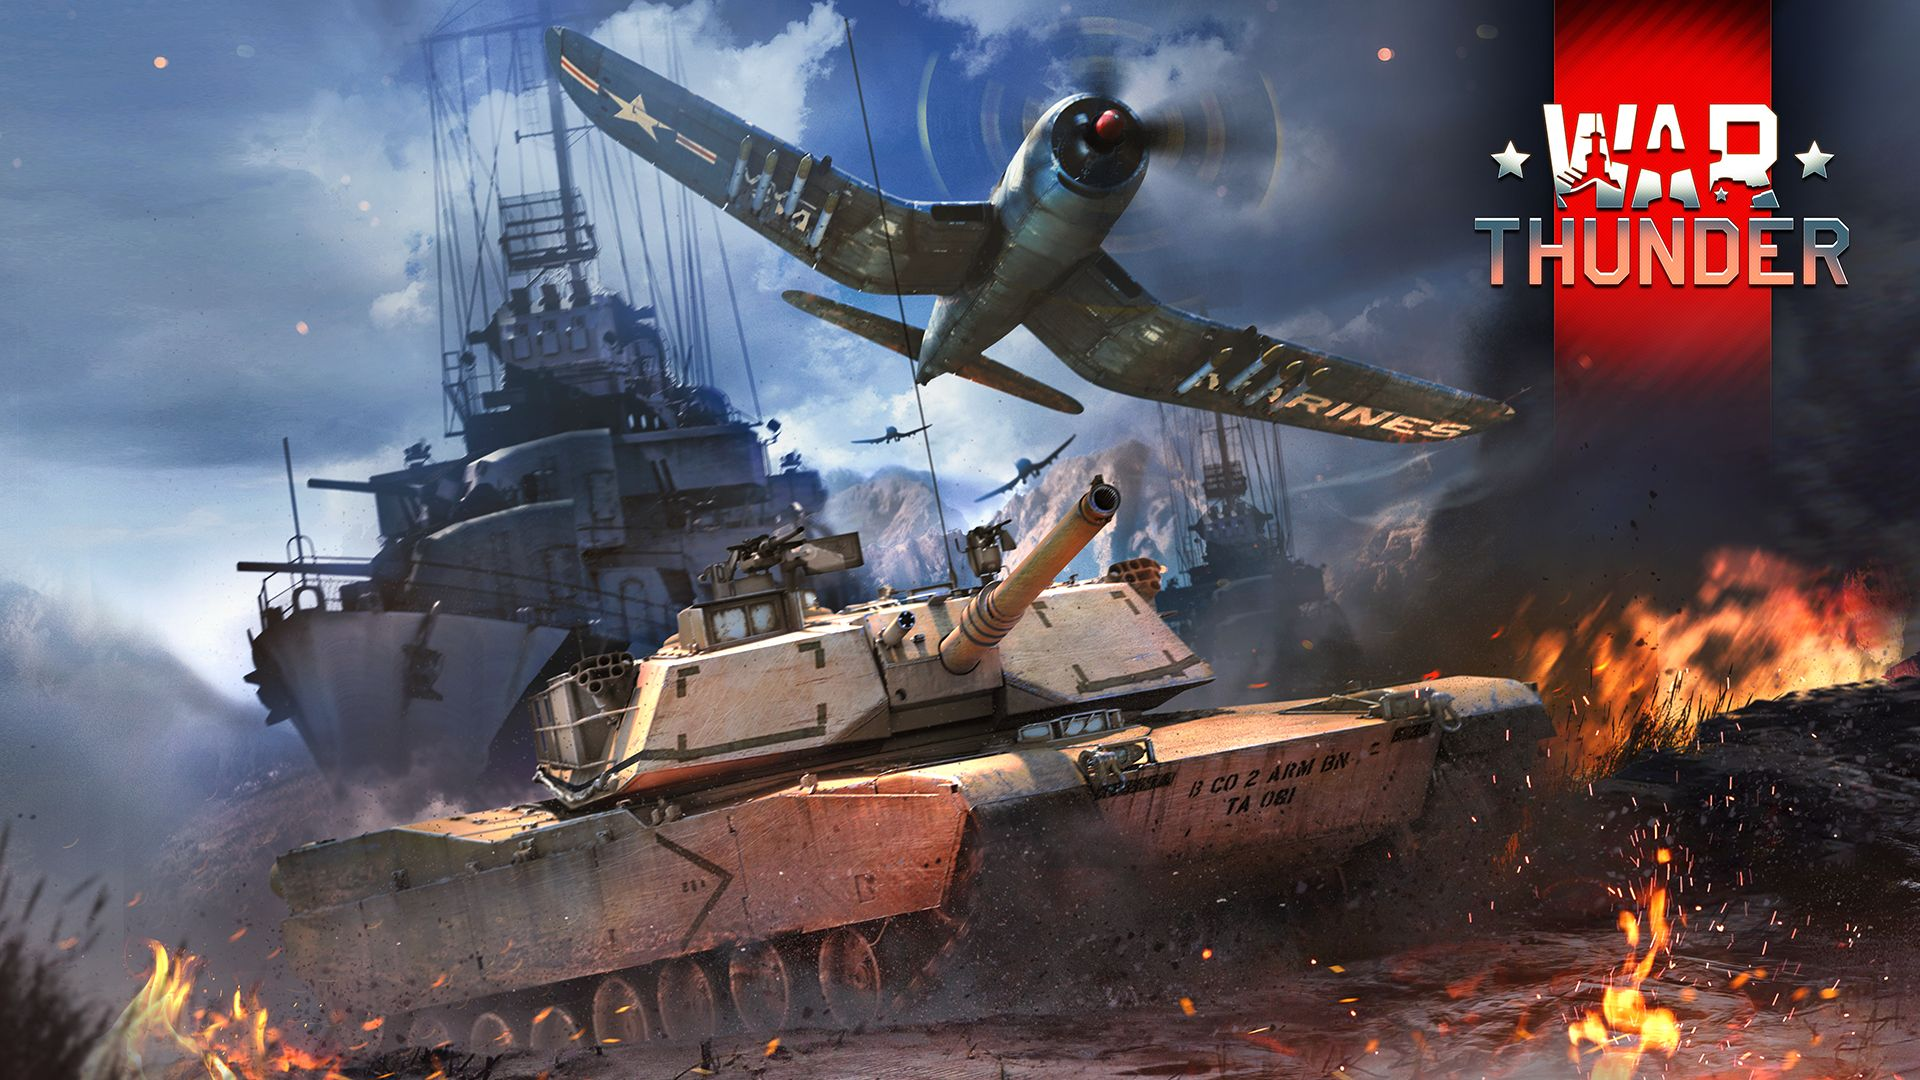 Video forWar Thunder Founder Packs Available Now on Xbox One